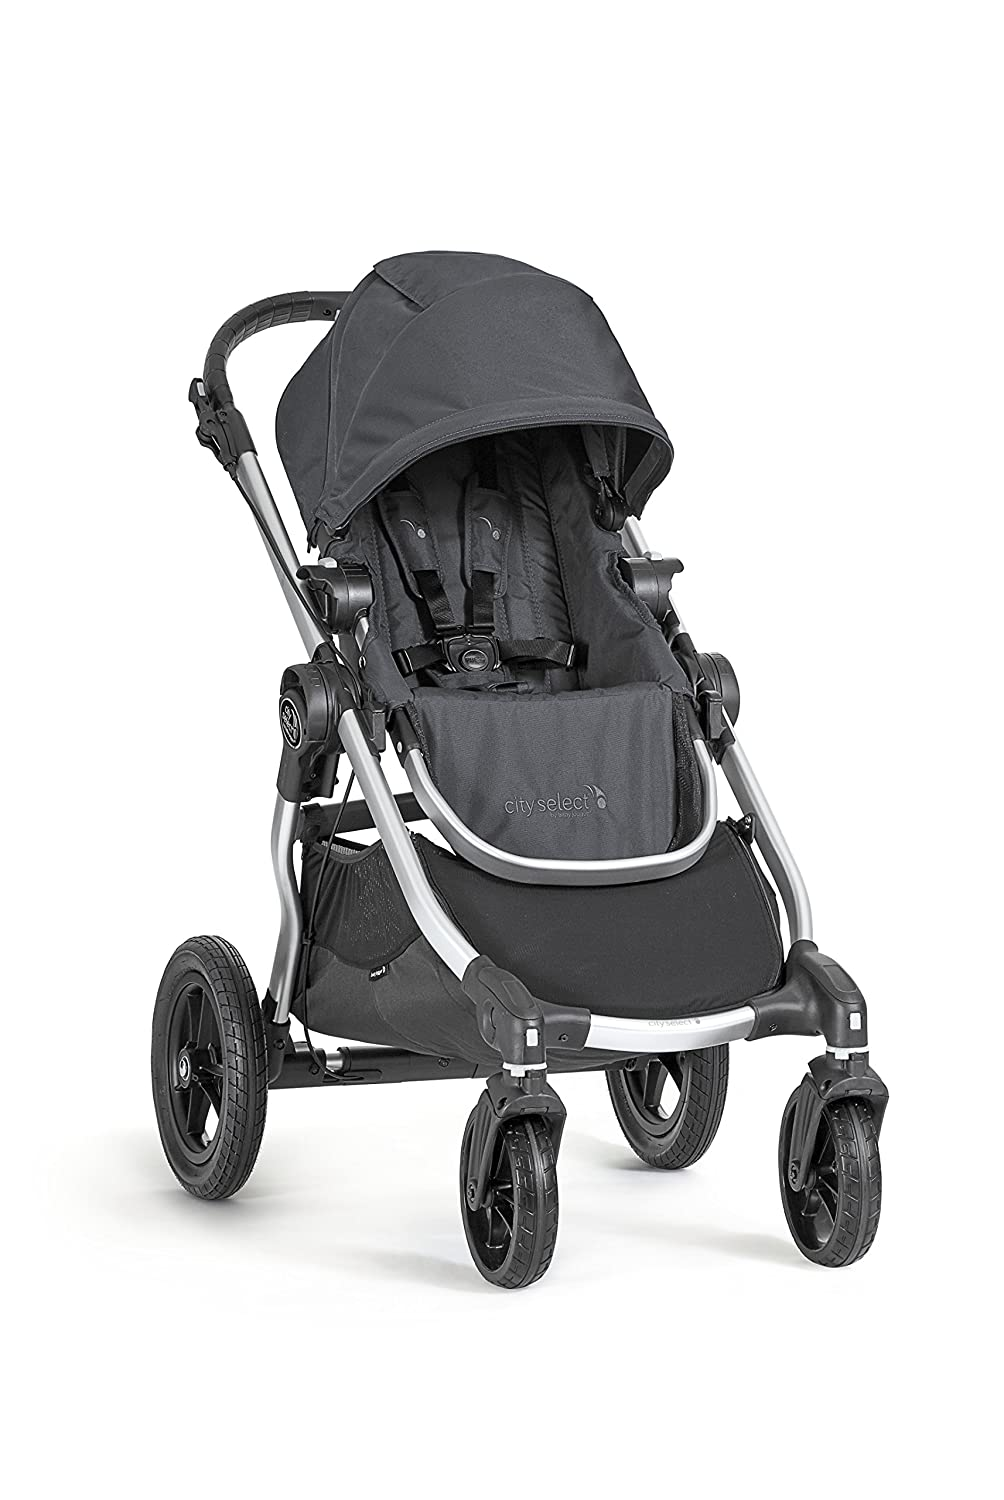 Baby Jogger City Sele Count, Titanium by Baby Jogger